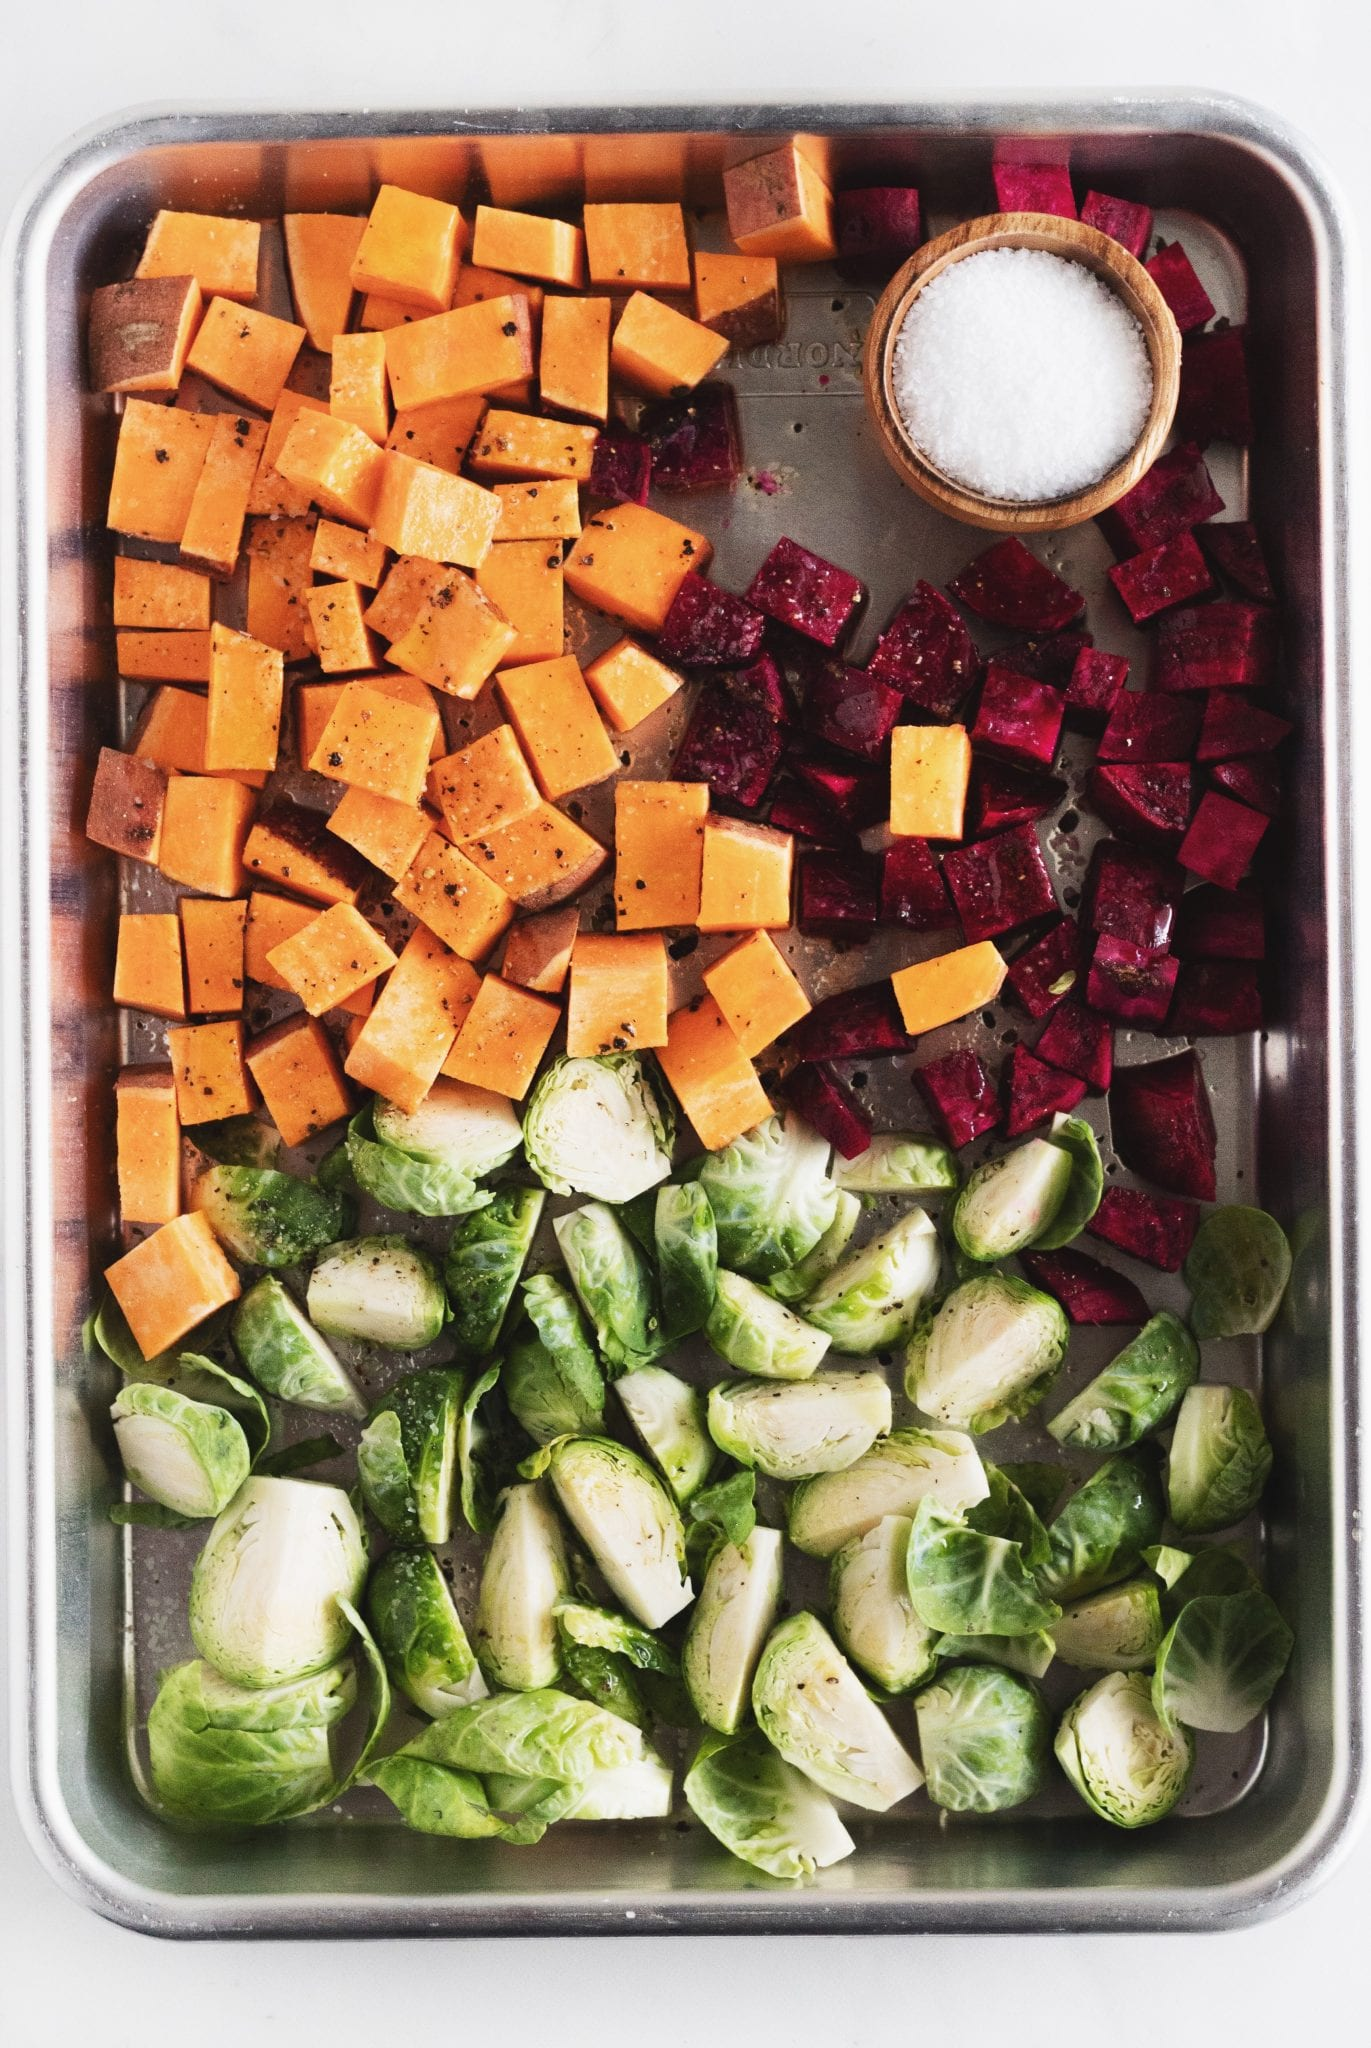 sweet potatoes, beets, and brussel sprouts on a sheet tray with salt